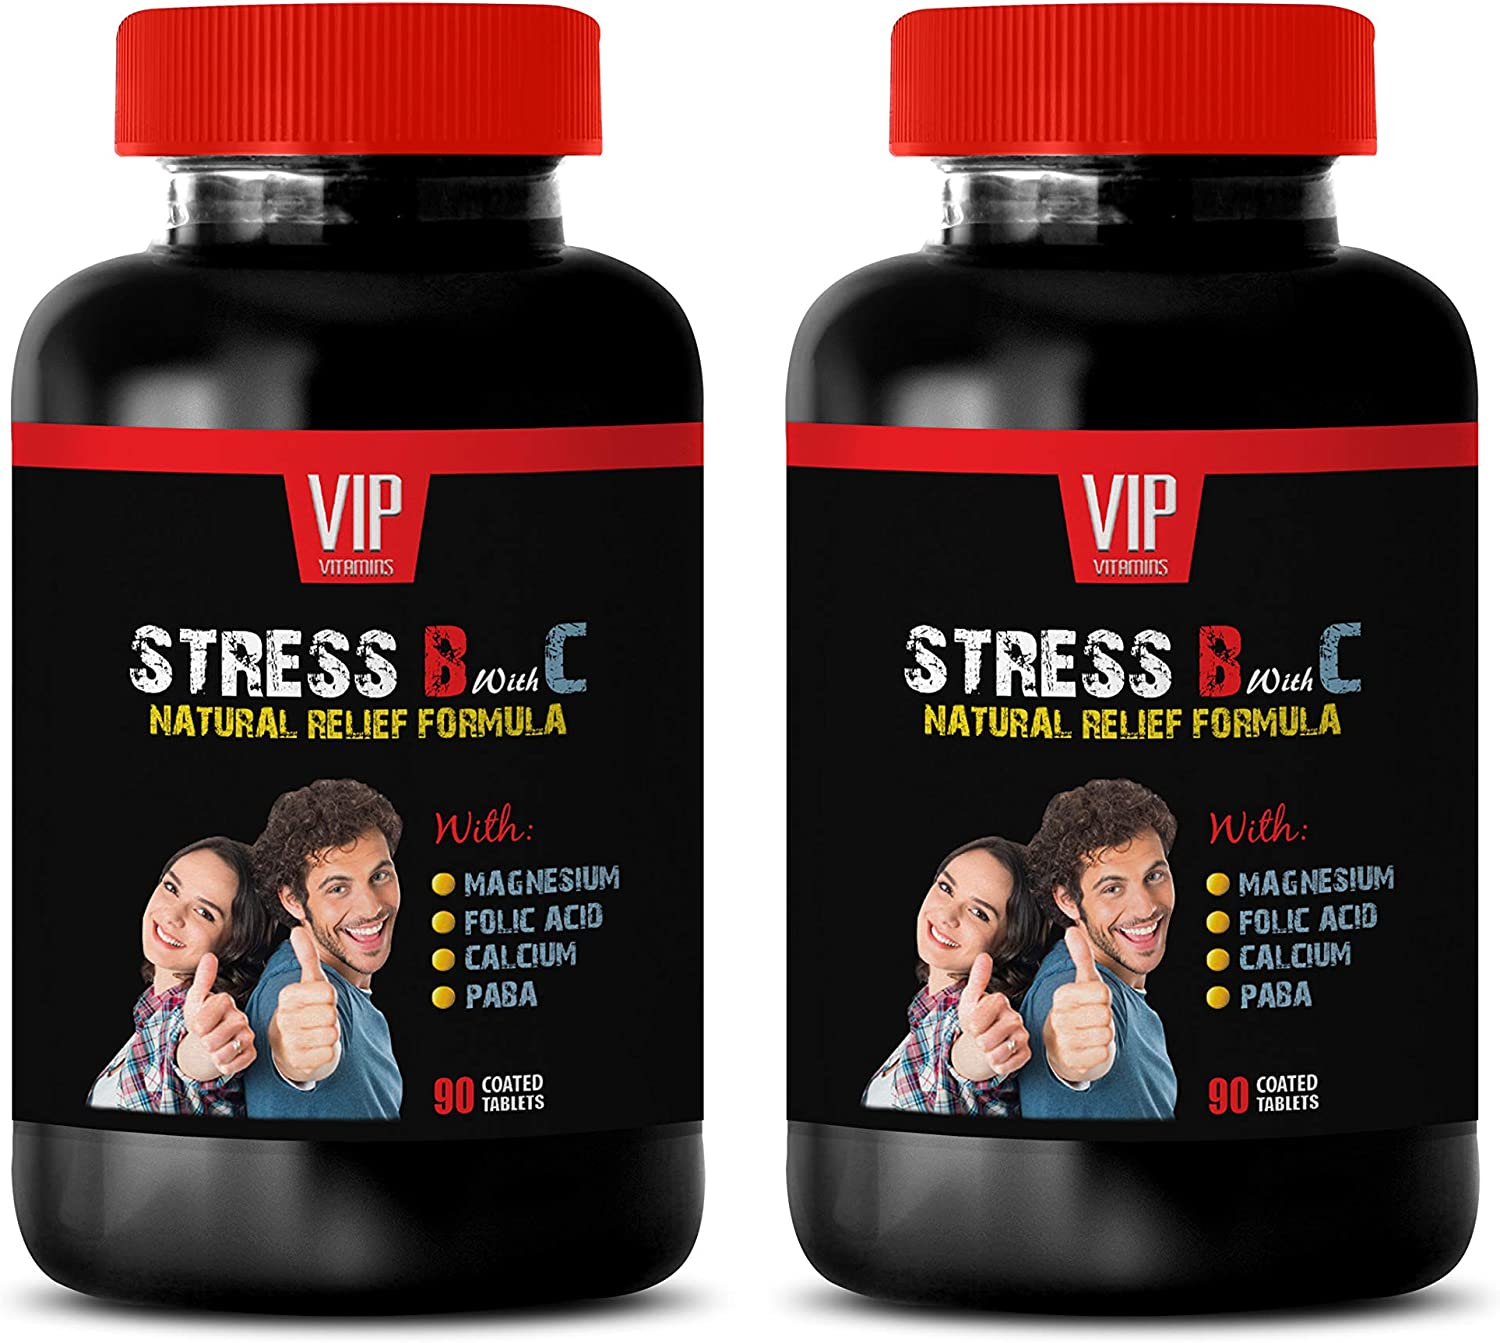 b Complex for Anxiety - Stress B C Relief Formula Super Special SALE held Bombing new work f Natural with